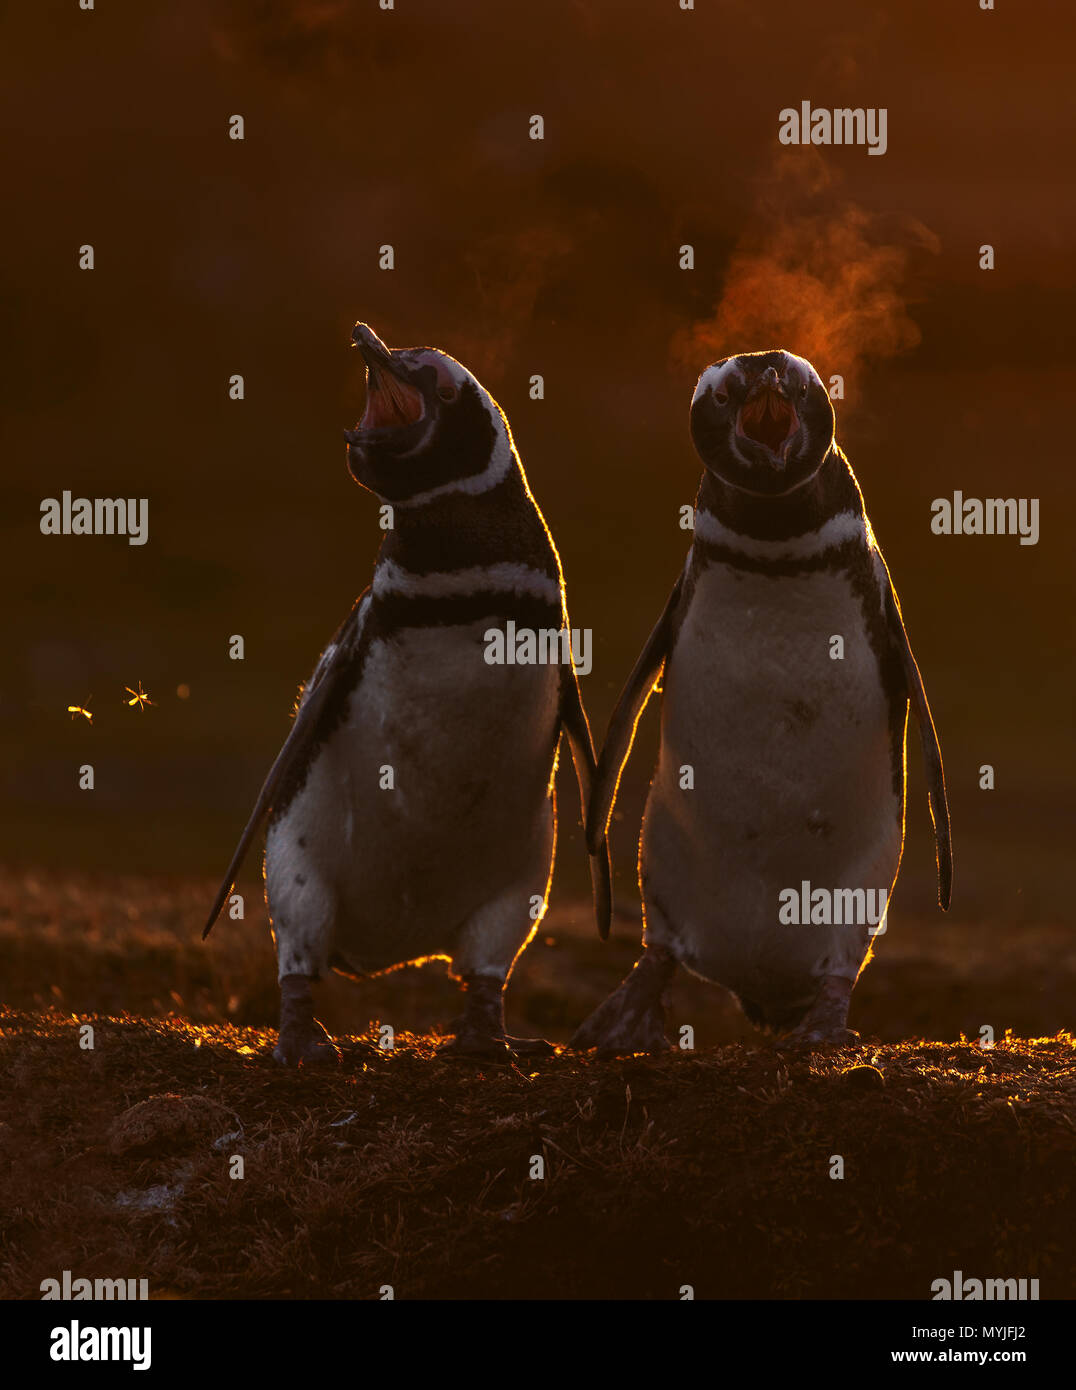 Magellanic penguin - Stock Image